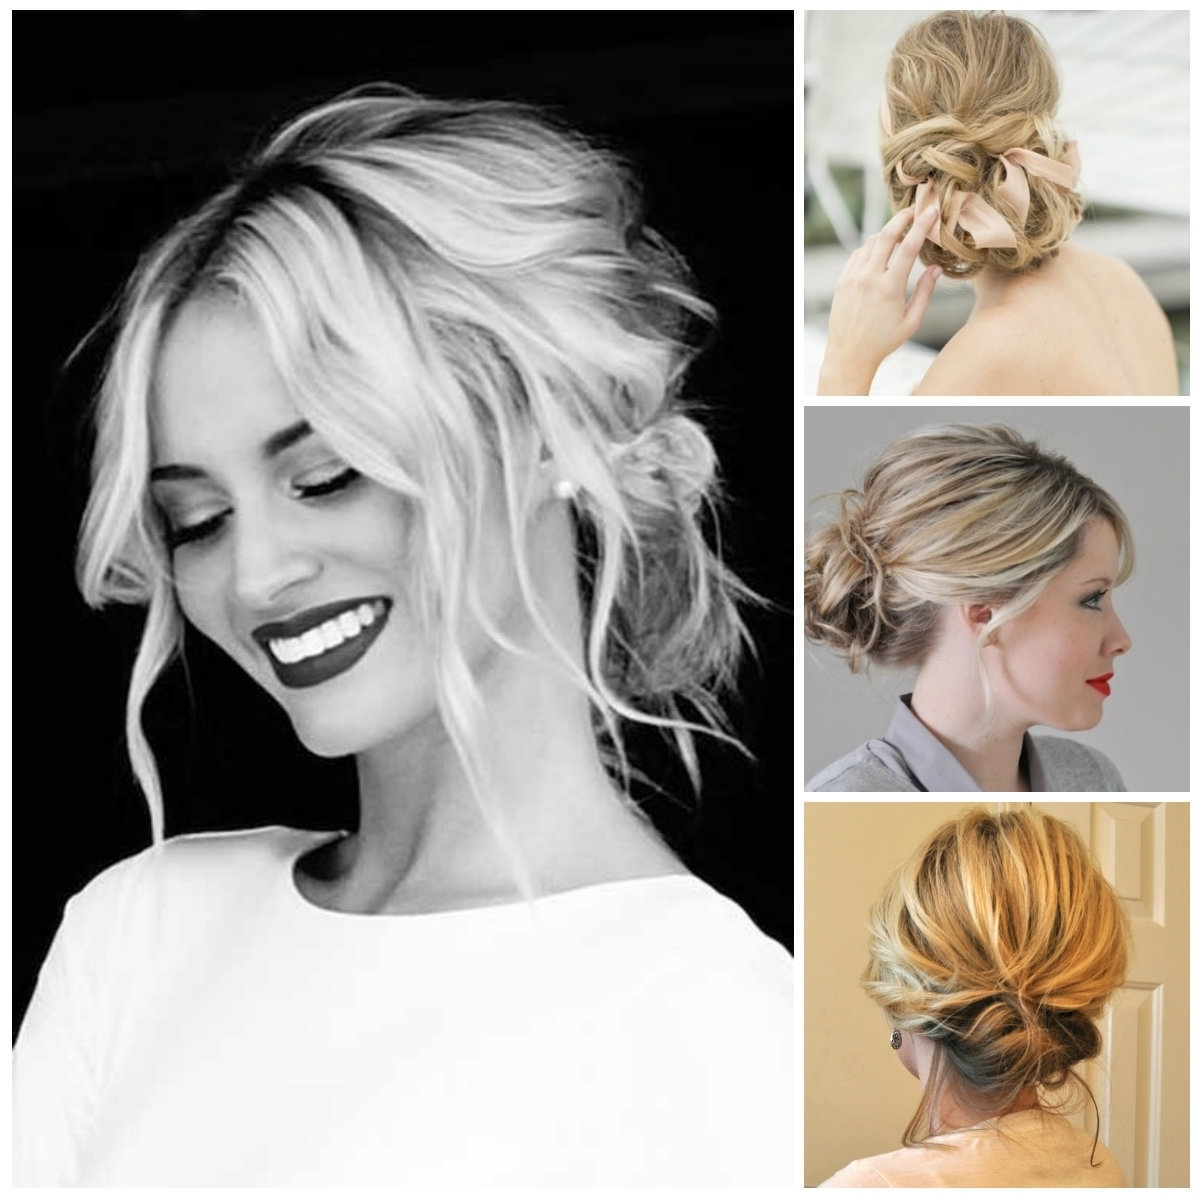 Formal Hairstyles For Shoulder Length Hair – Women Medium Haircut Throughout Wedding Updo Hairstyles For Shoulder Length Hair (View 5 of 15)